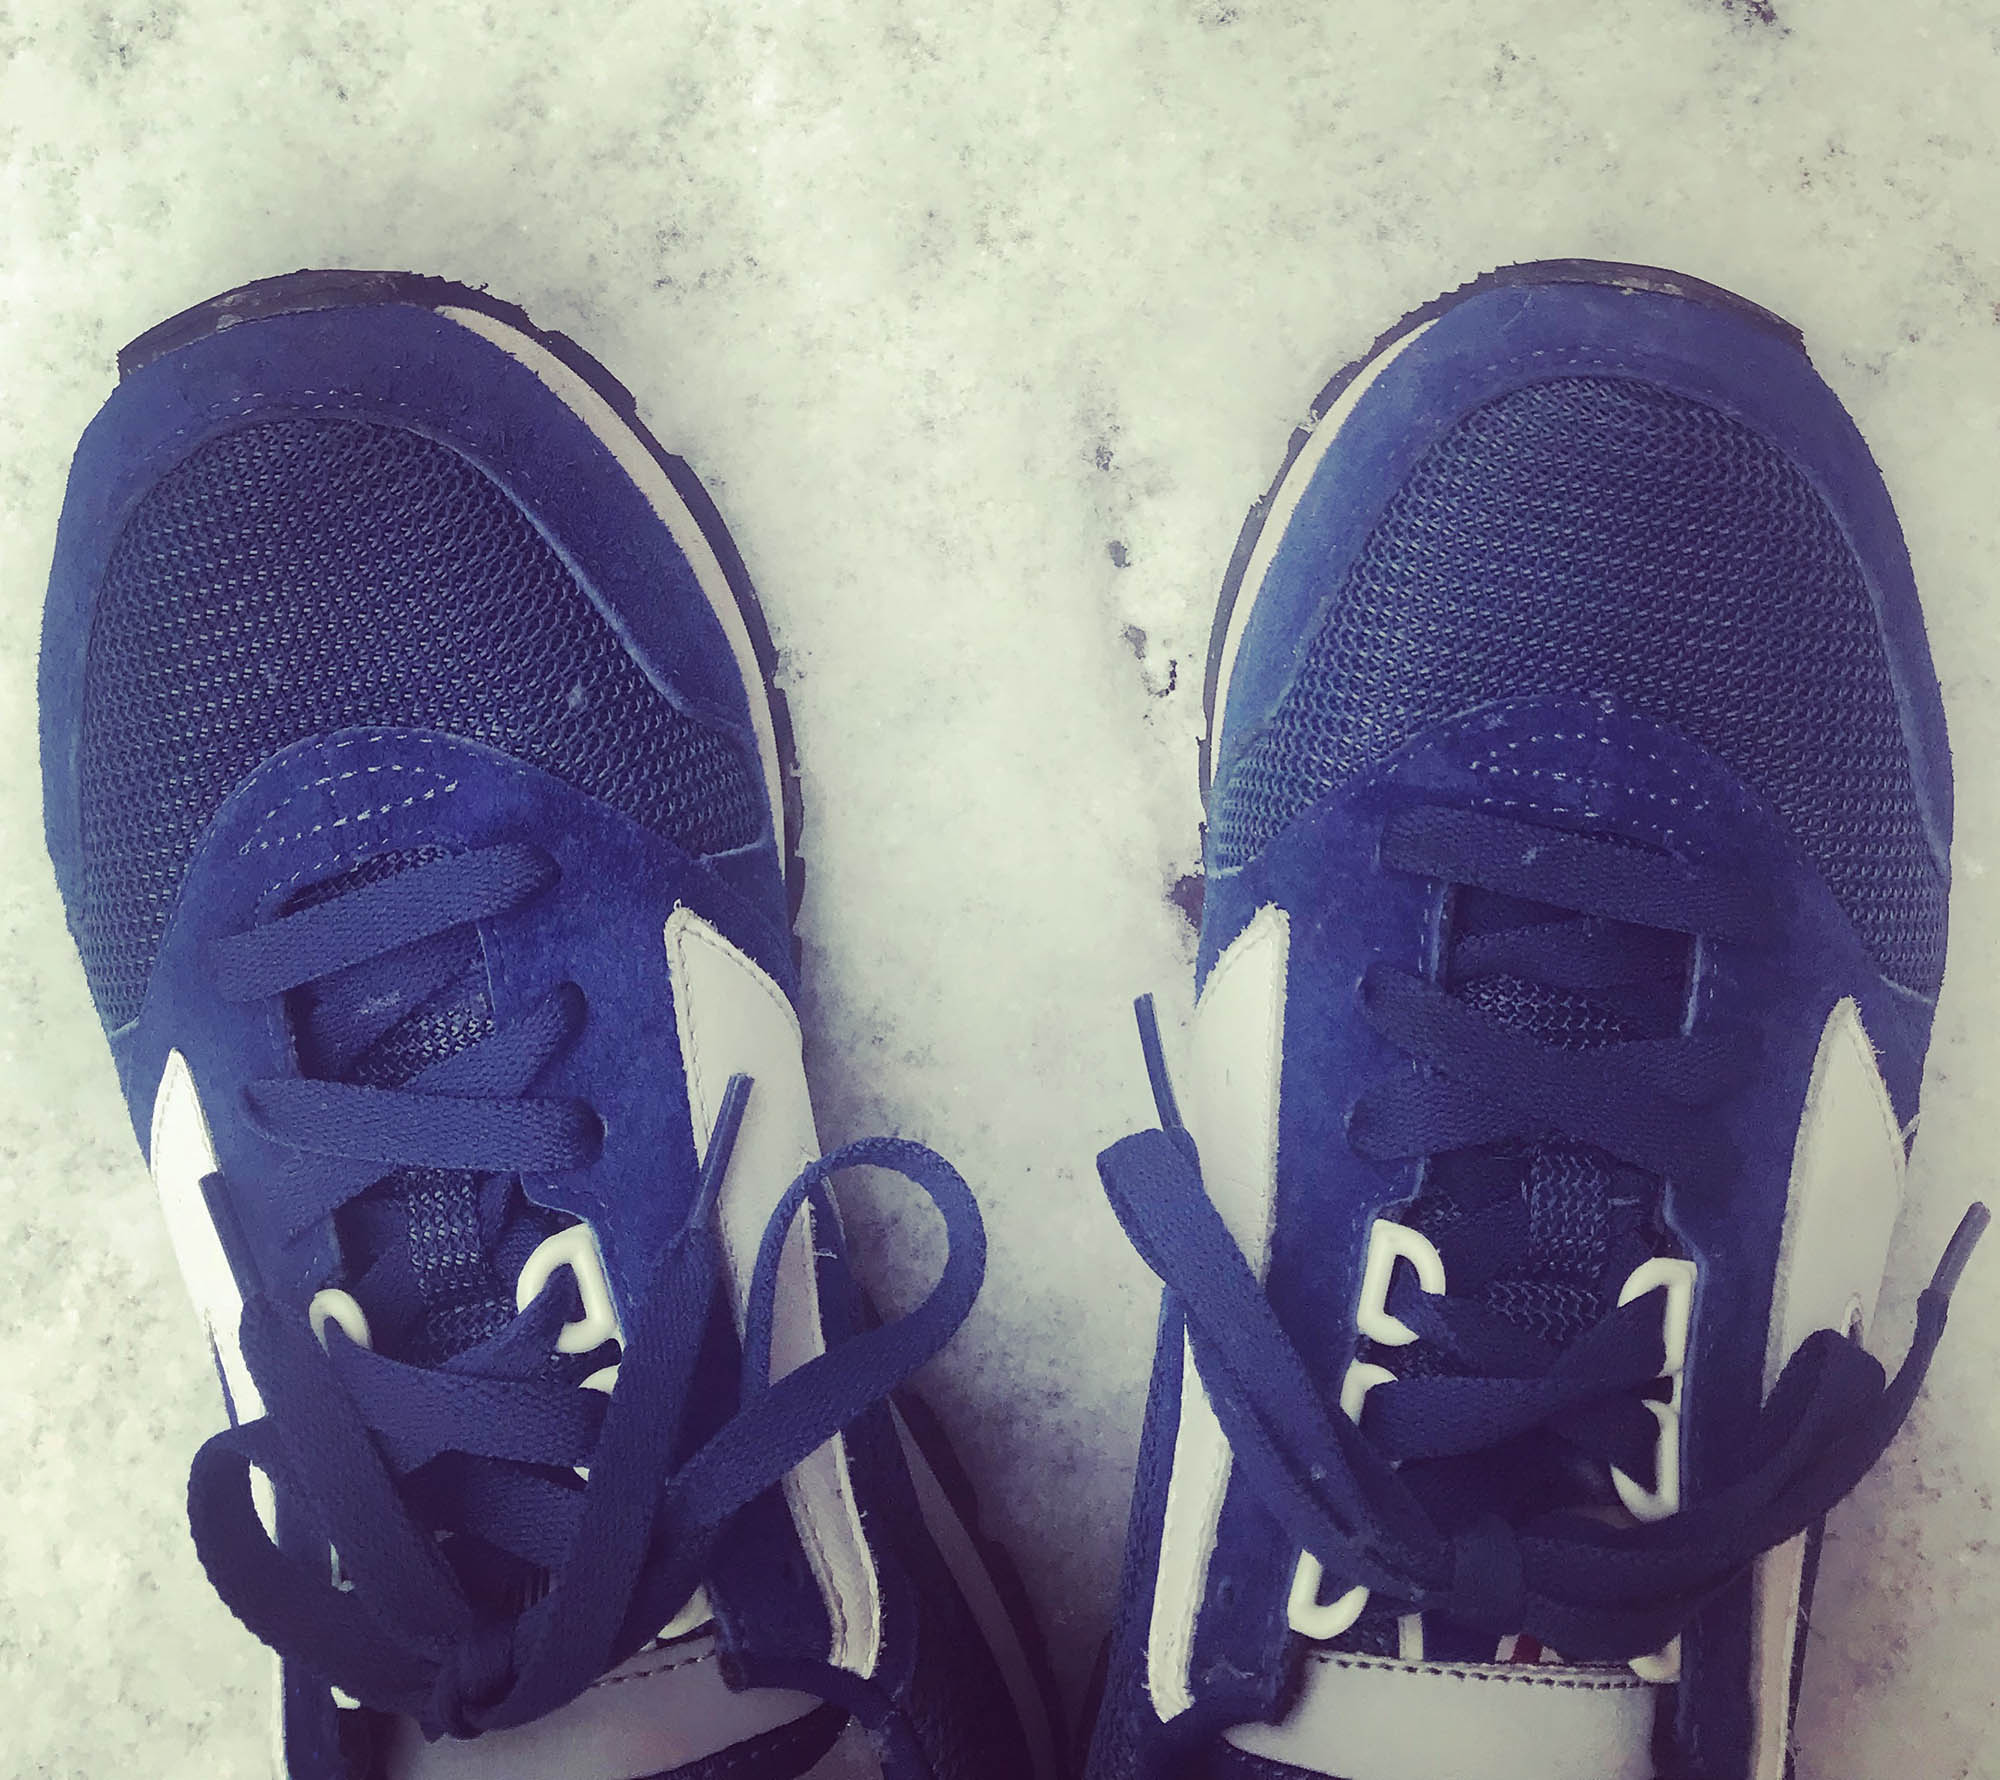 blue sneakers set down on snowy ground